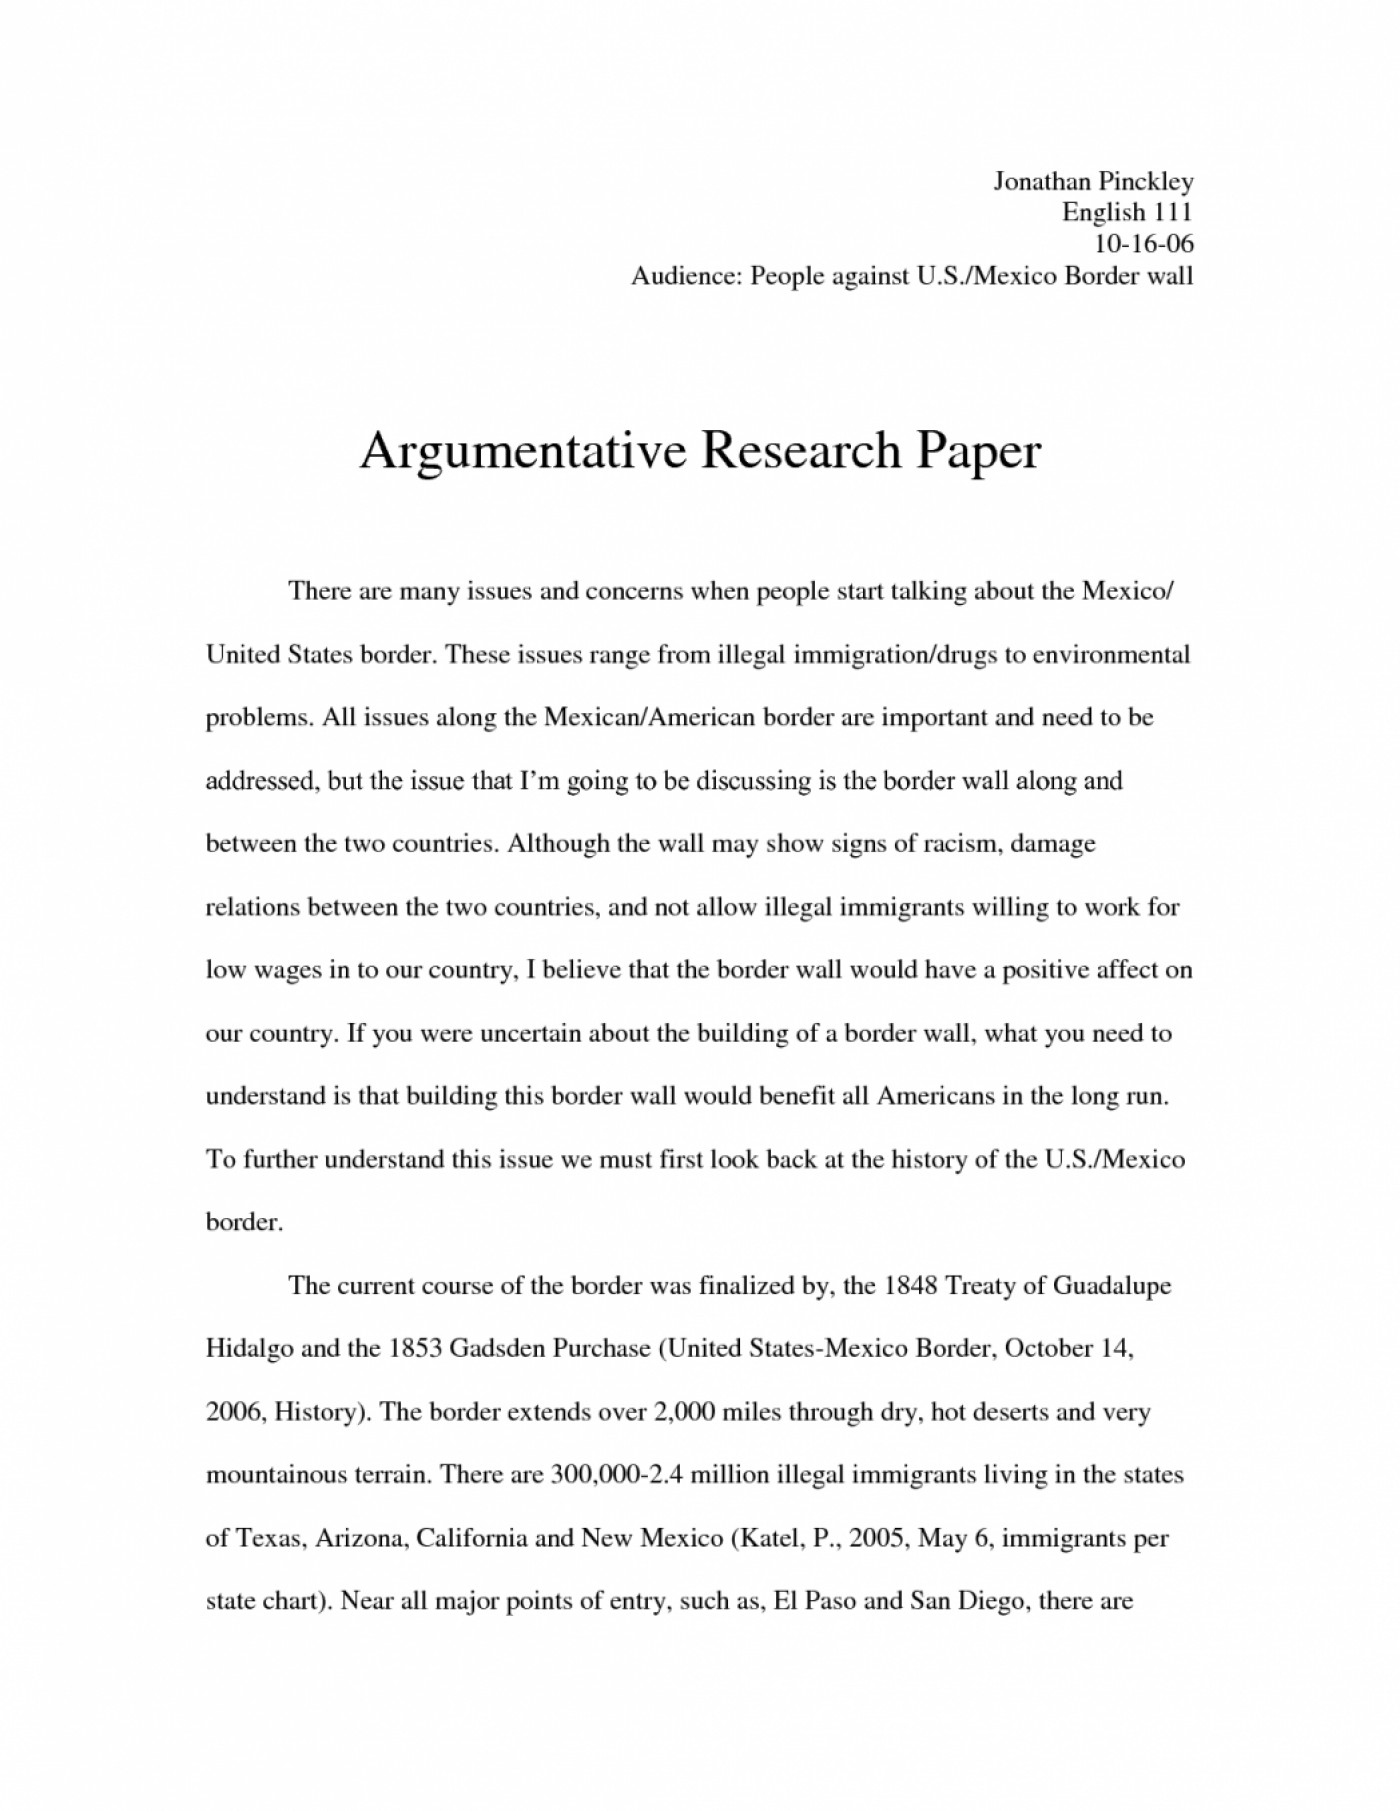 009 racism essay topics example on immigrants term paper ideas about